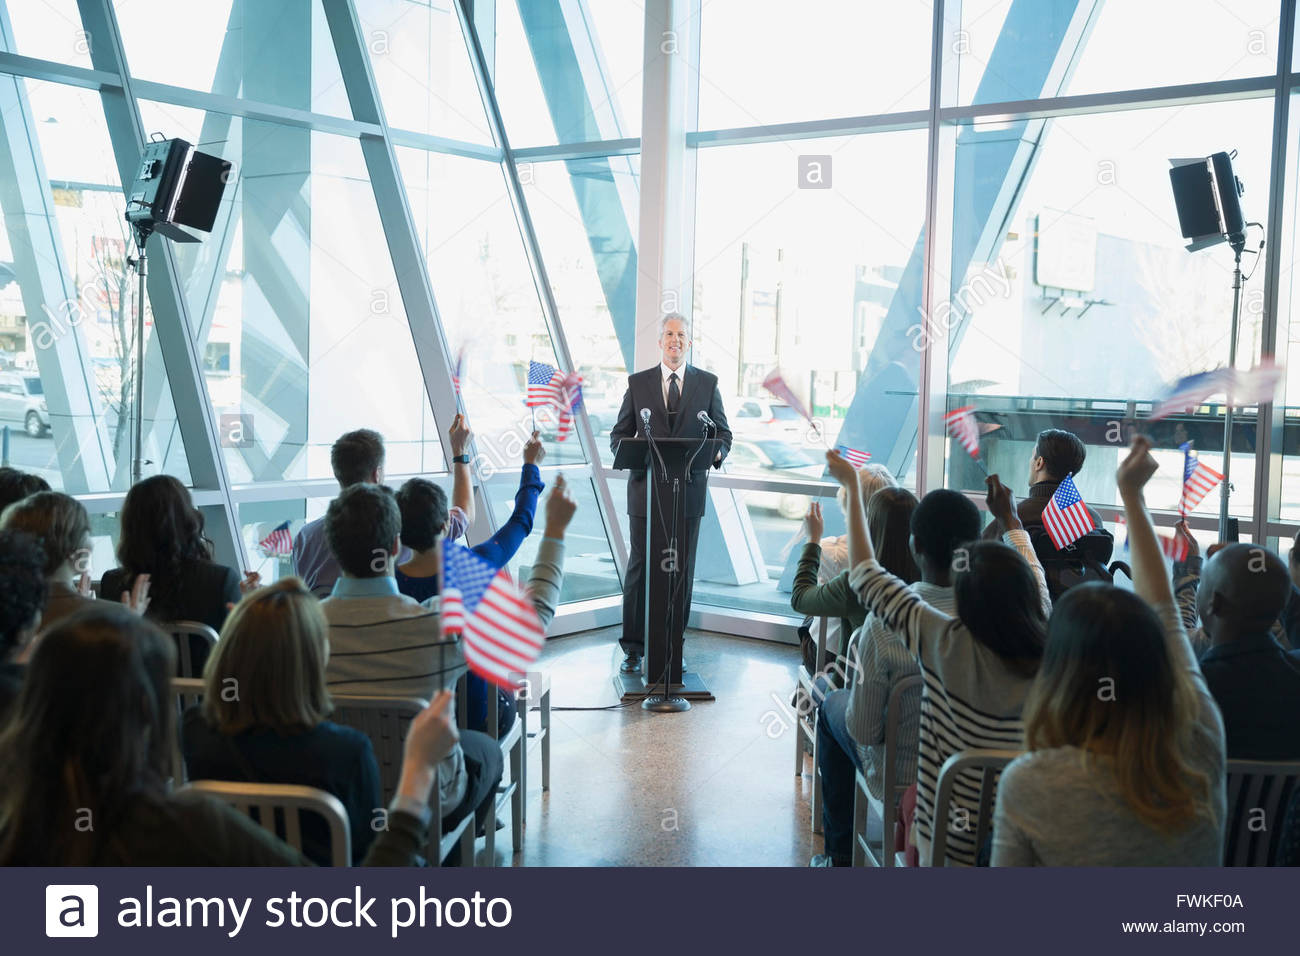 Crowd waving American flags at political rally - Stock Image